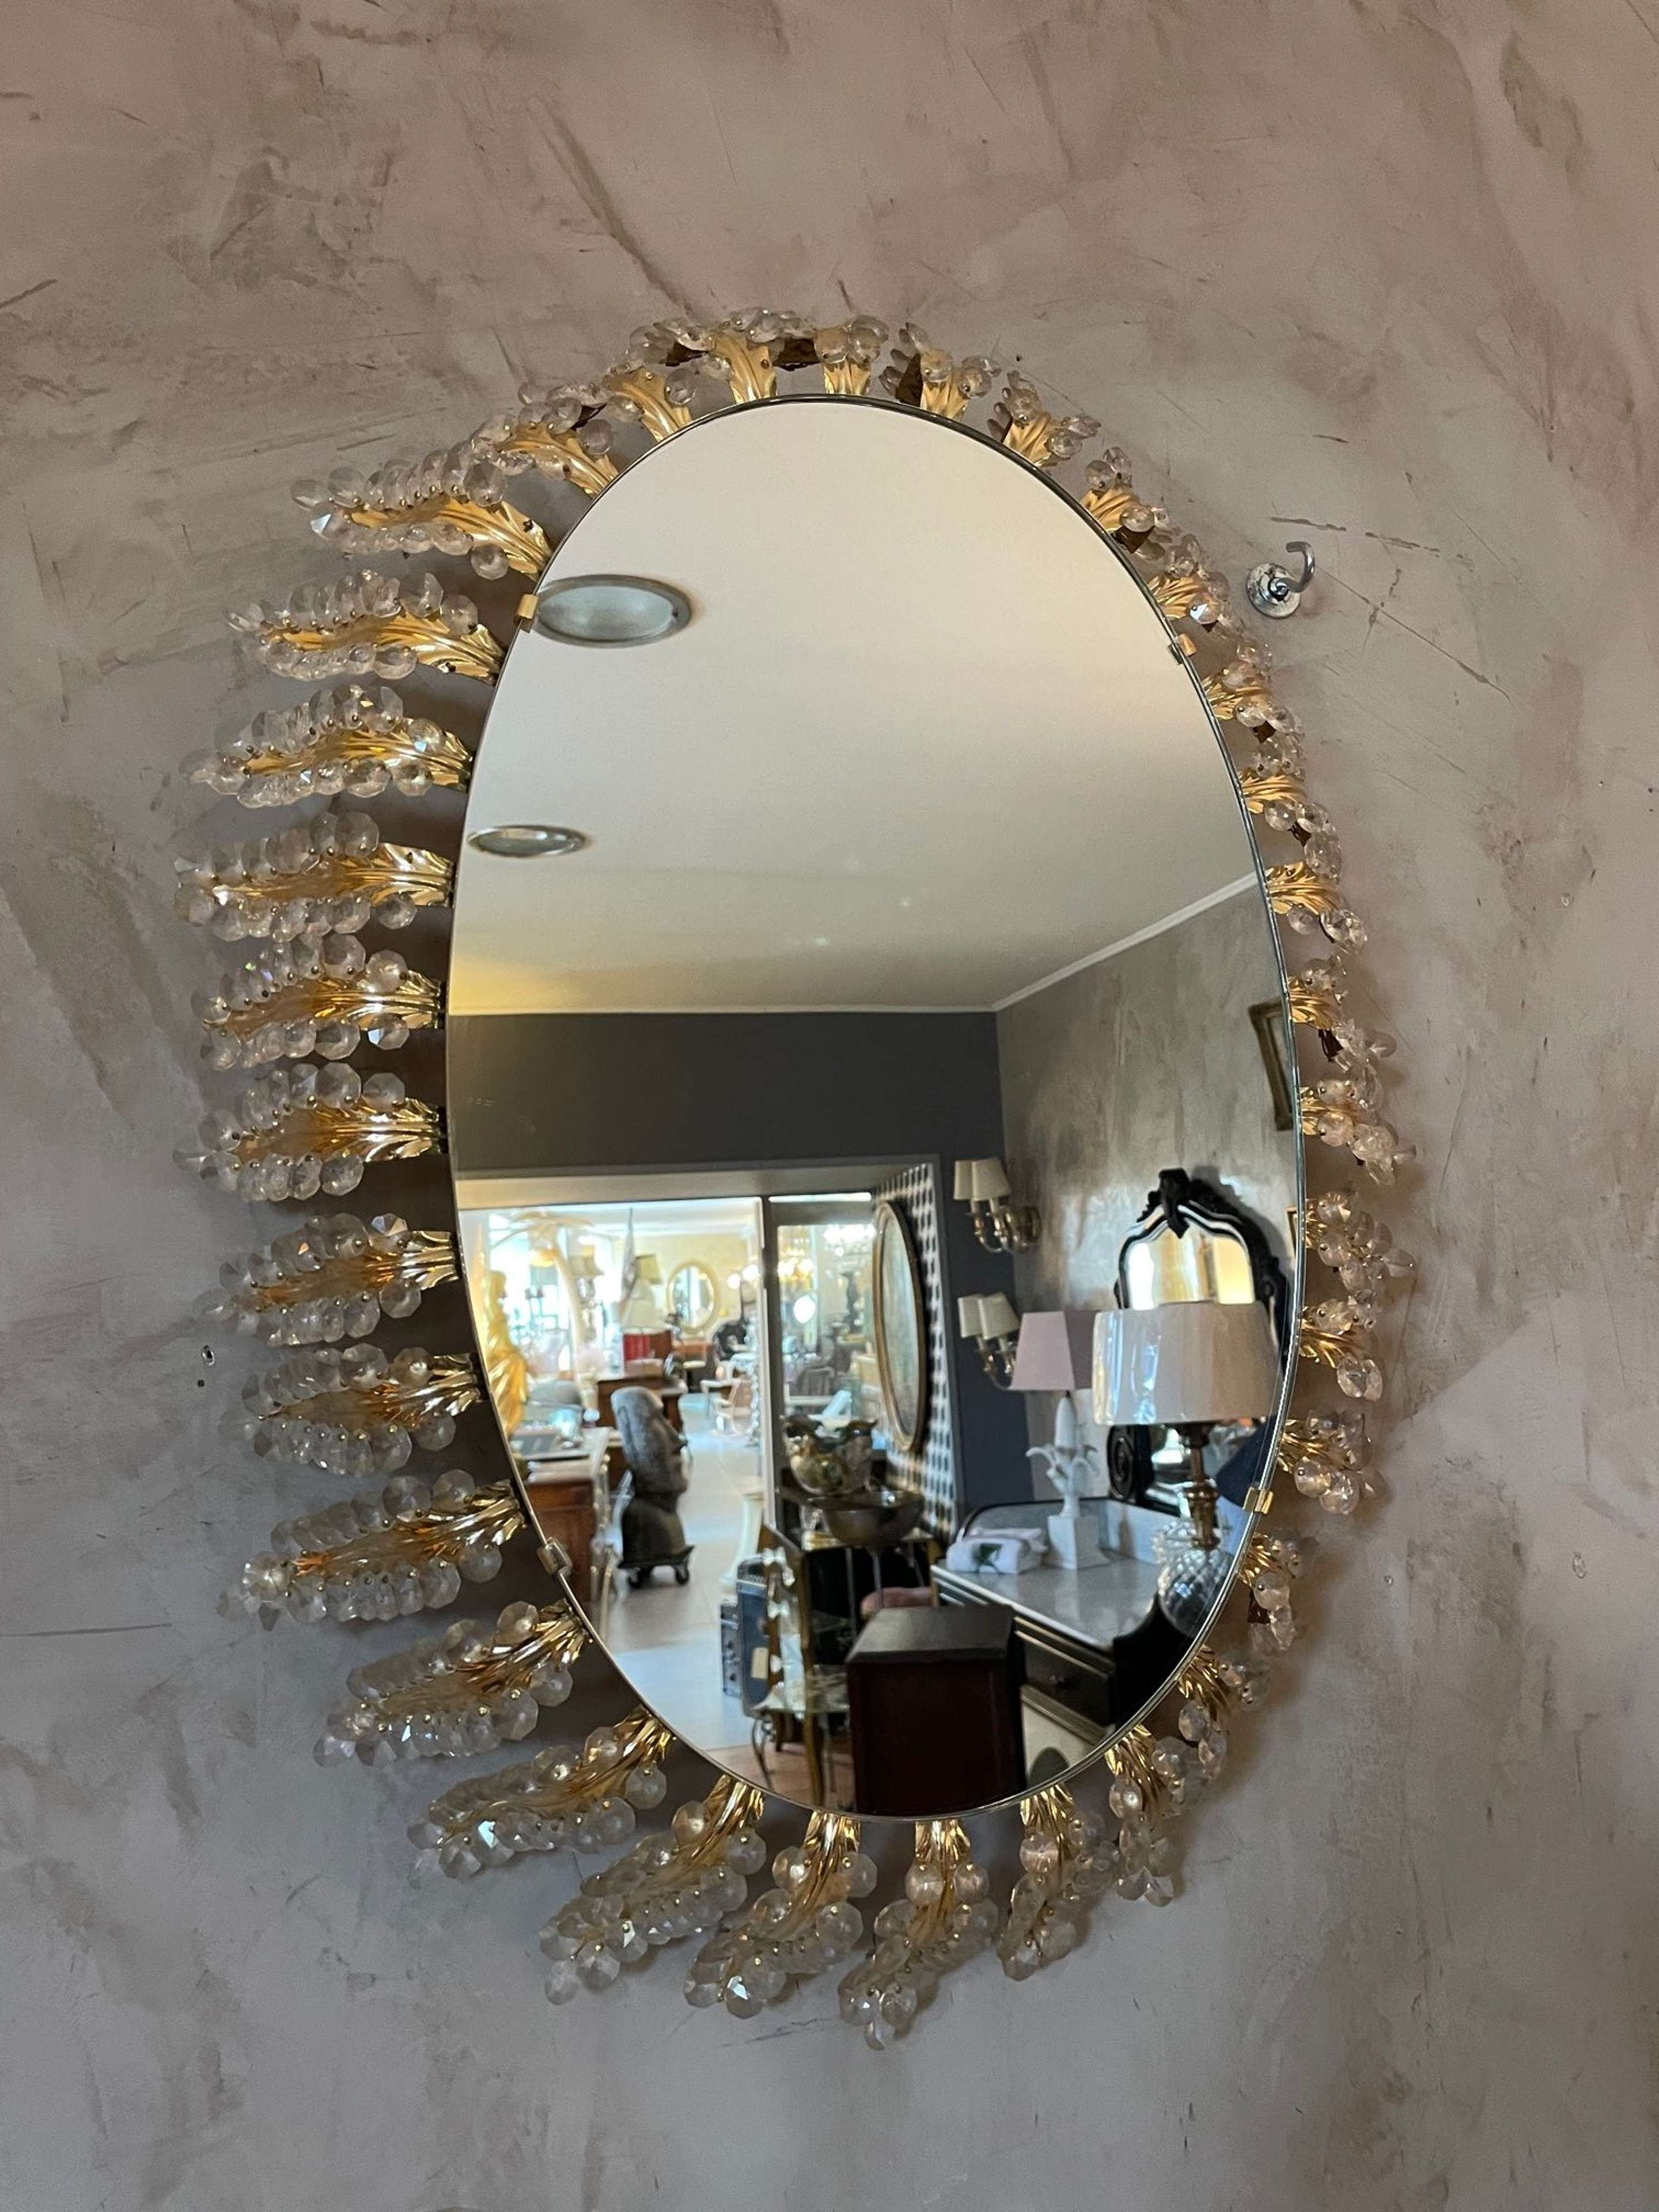 20th Century, Italian Oval Brass and Flowers Mirror, 1950s